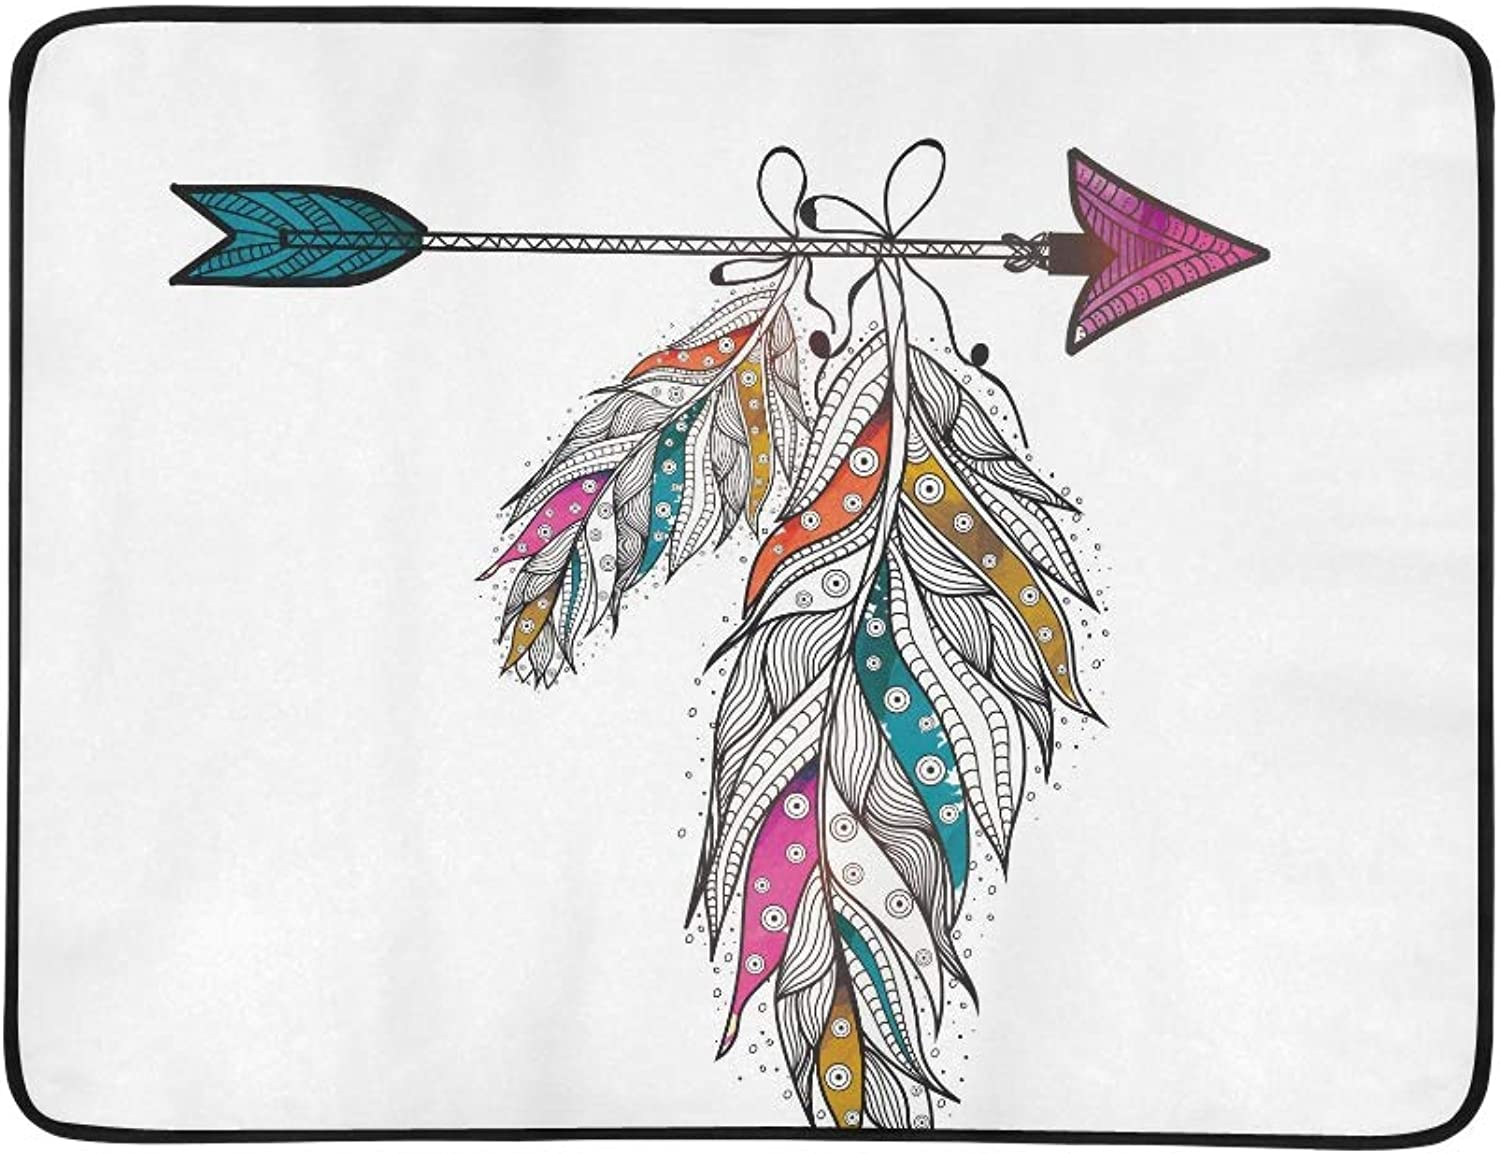 Boho Style Ornamental Feathers Hanging On Arrow Cr Pattern Portable and Foldable Blanket Mat 60x78 Inch Handy Mat for Camping Picnic Beach Indoor Outdoor Travel